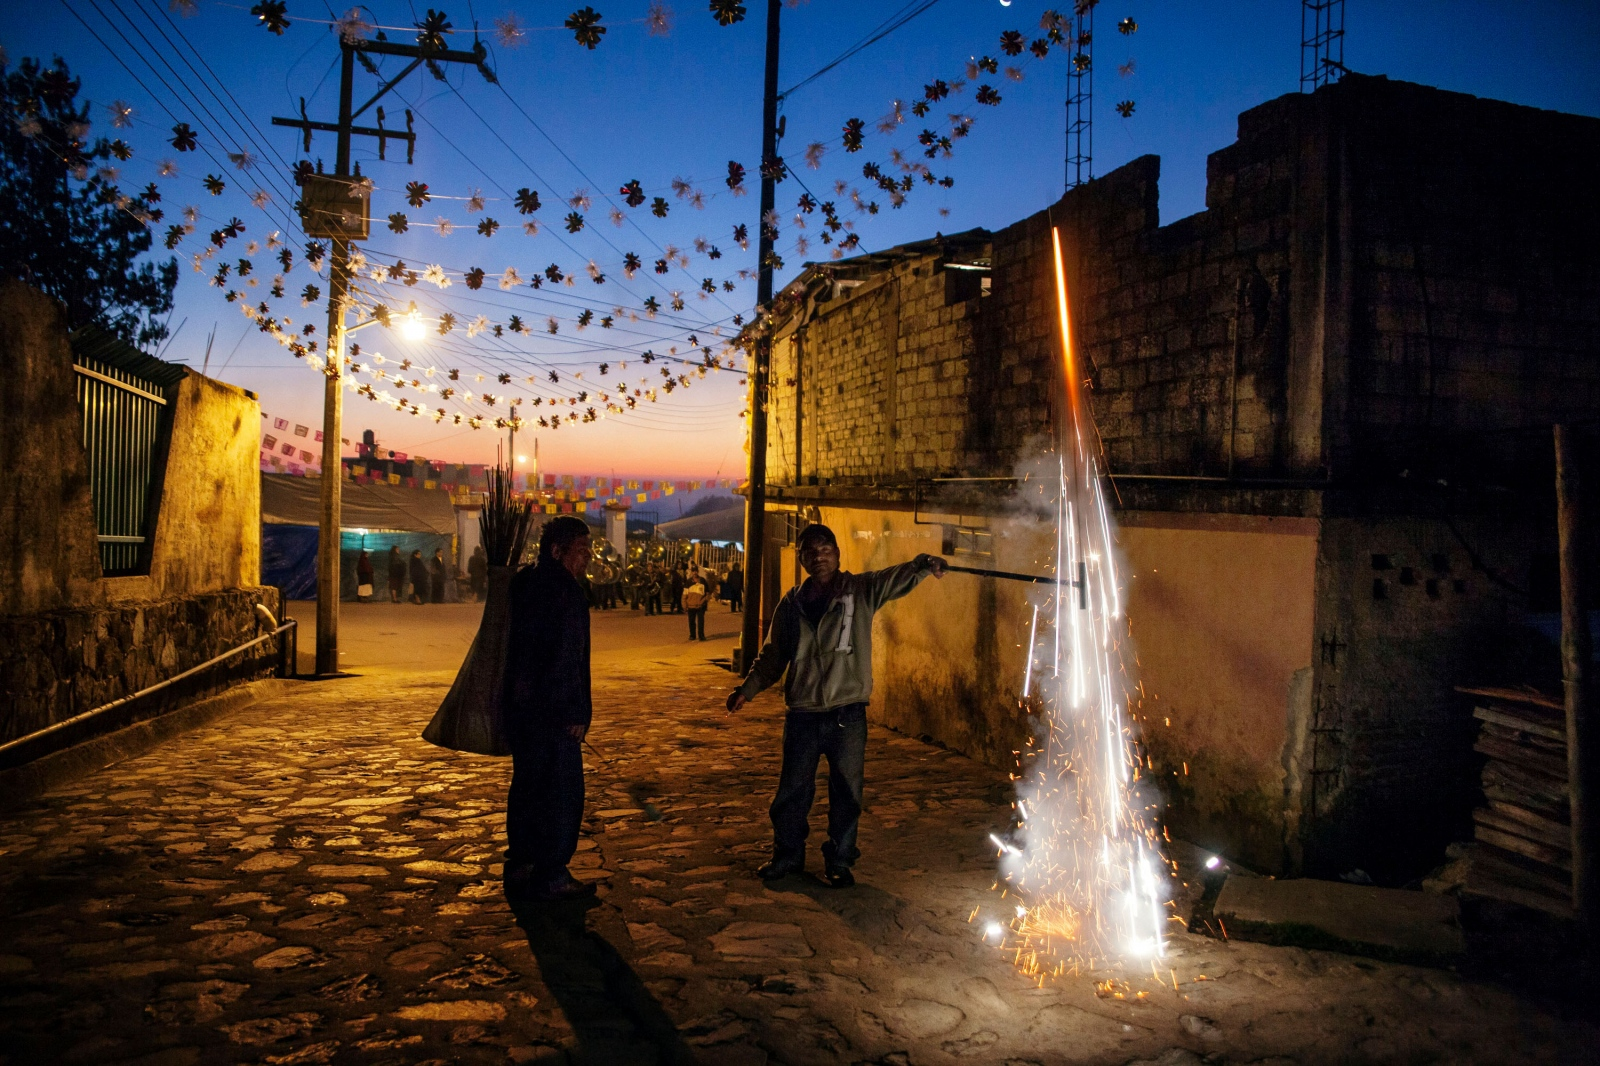 TOTONTEPEC VILLA DE MORELOS, JANUARY 20, 2012. Men set off fireworks before sunrise in the village of Totontepec Mixe as a celebration of the saint's birthday. The men headed a procession of villagers who would carry the saint's image around the village in a ritual parade.